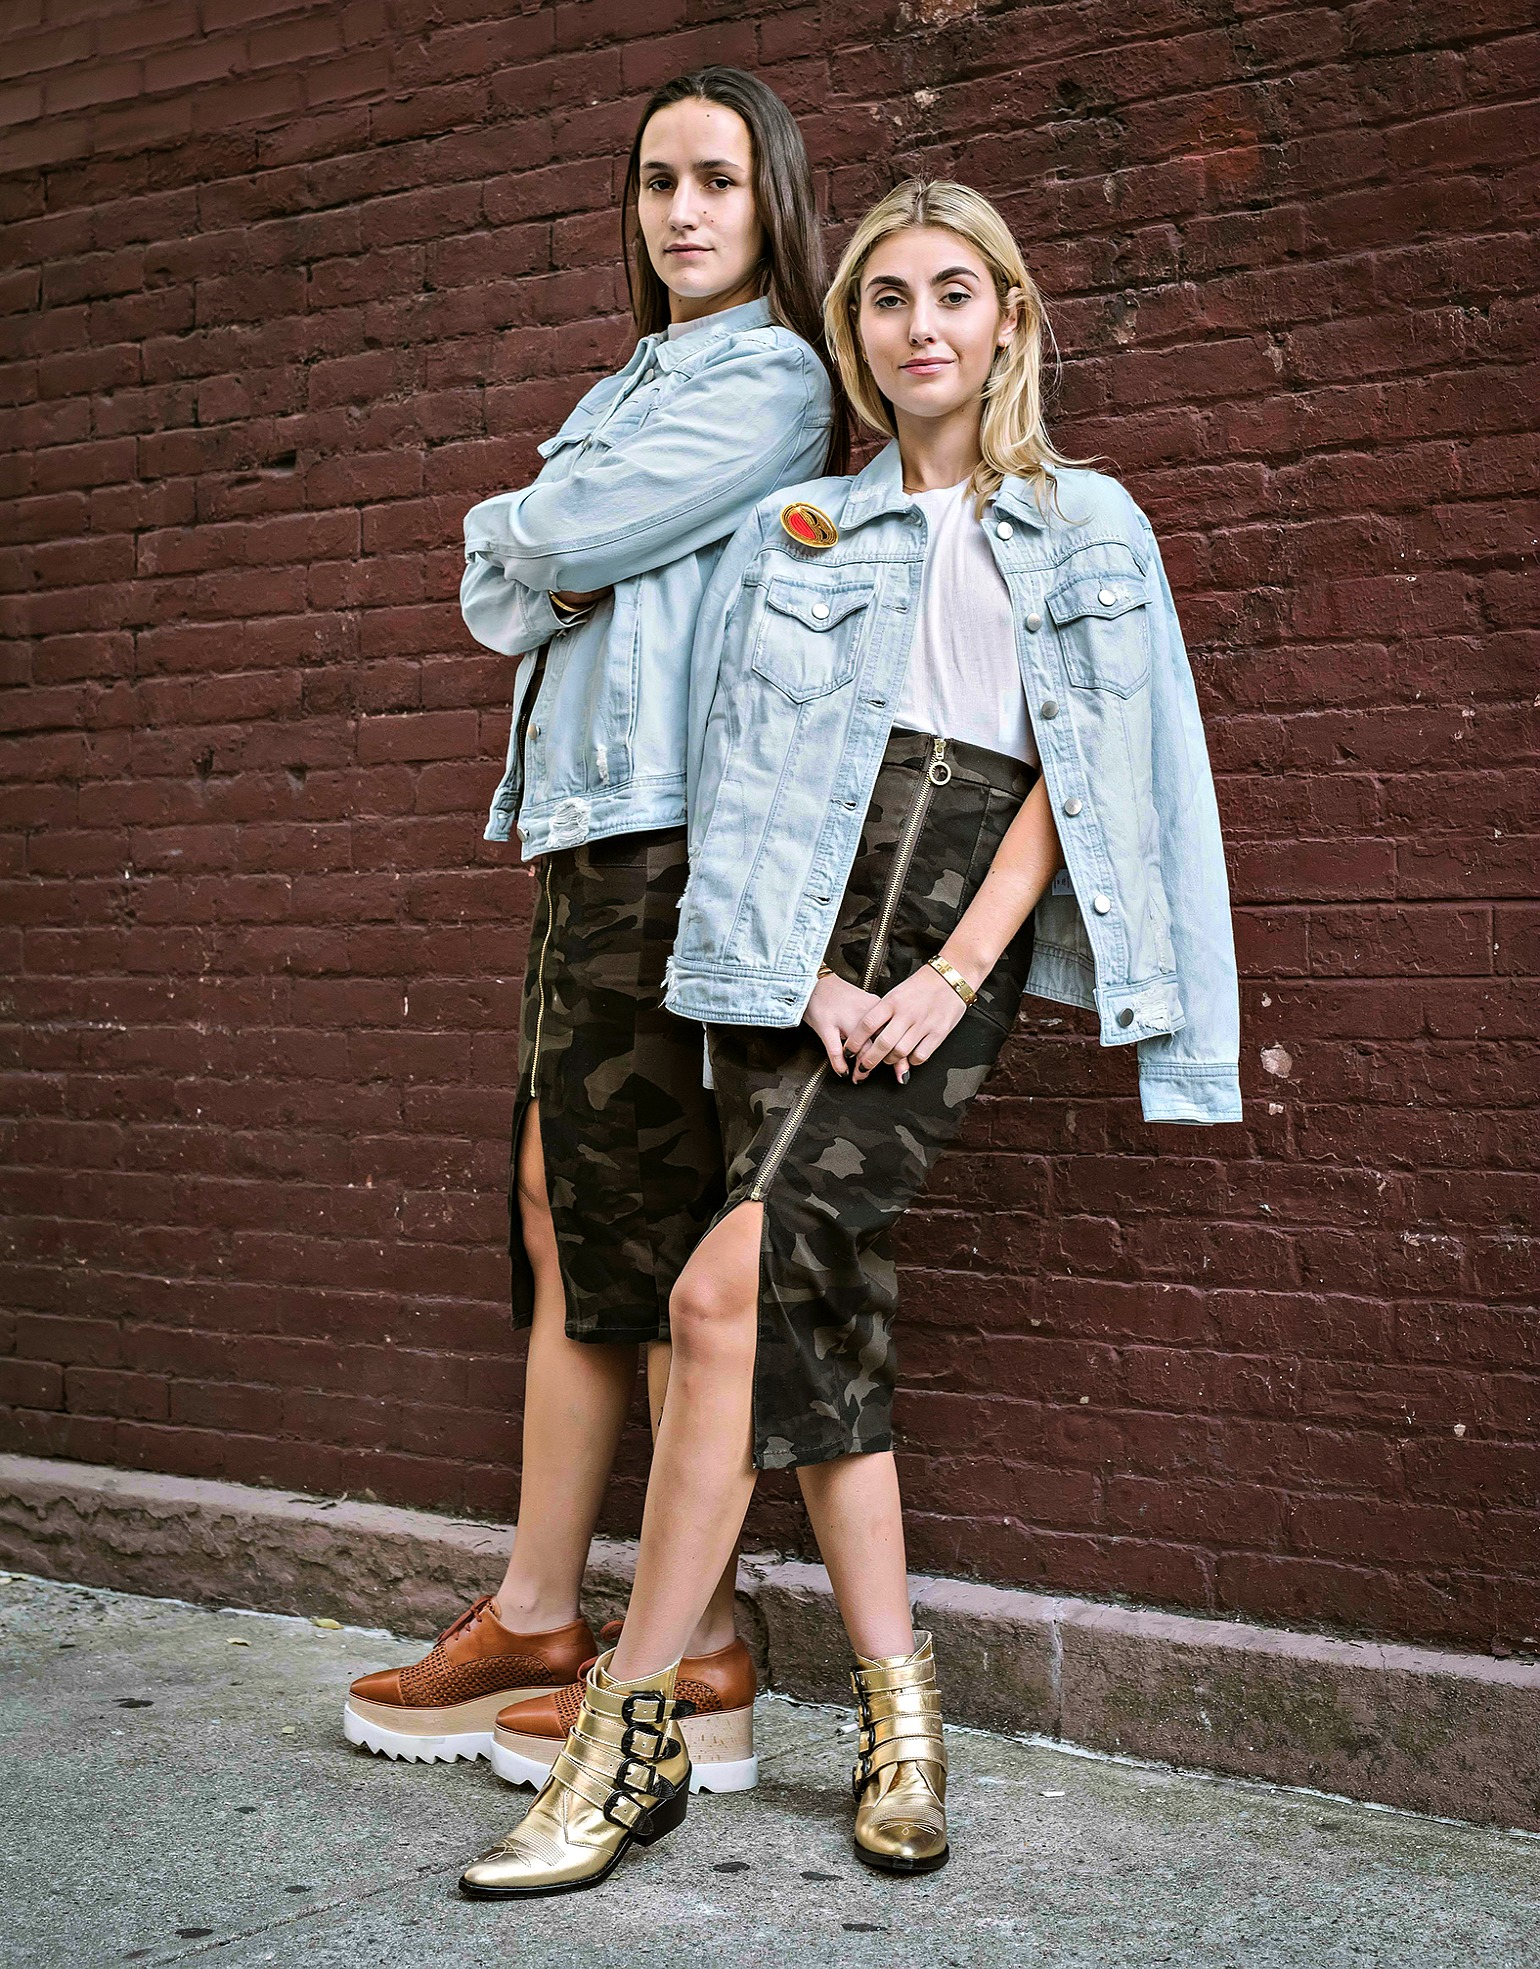 SOPHIE AND CHARLOTTE BICKLEY YIN 2MY YANG SISTER FASHION BLOGGERS NY & CO 1SOPHIE BICKLEY YIN 2MY YANG SISTER FASHION BLOGGERS NY & CO